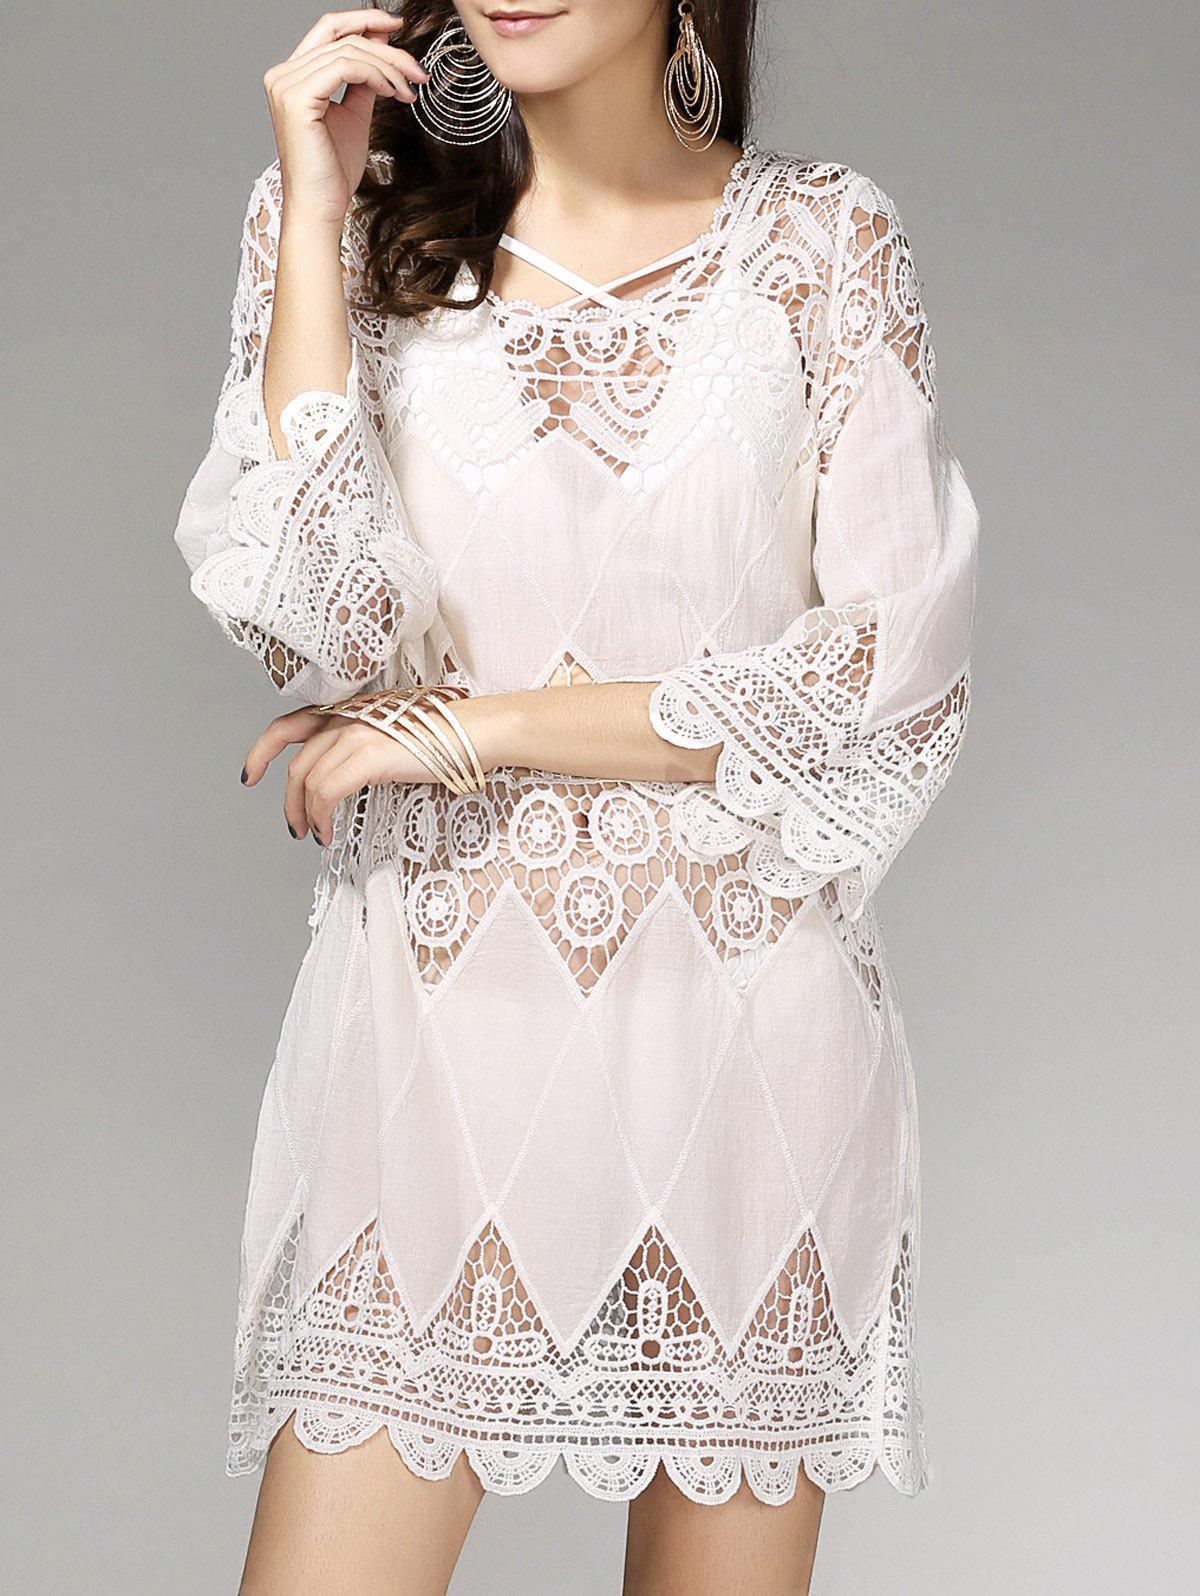 Stylish Women's 3/4 Sleeve Hollow Out Criss-Cross Cover Up Dress